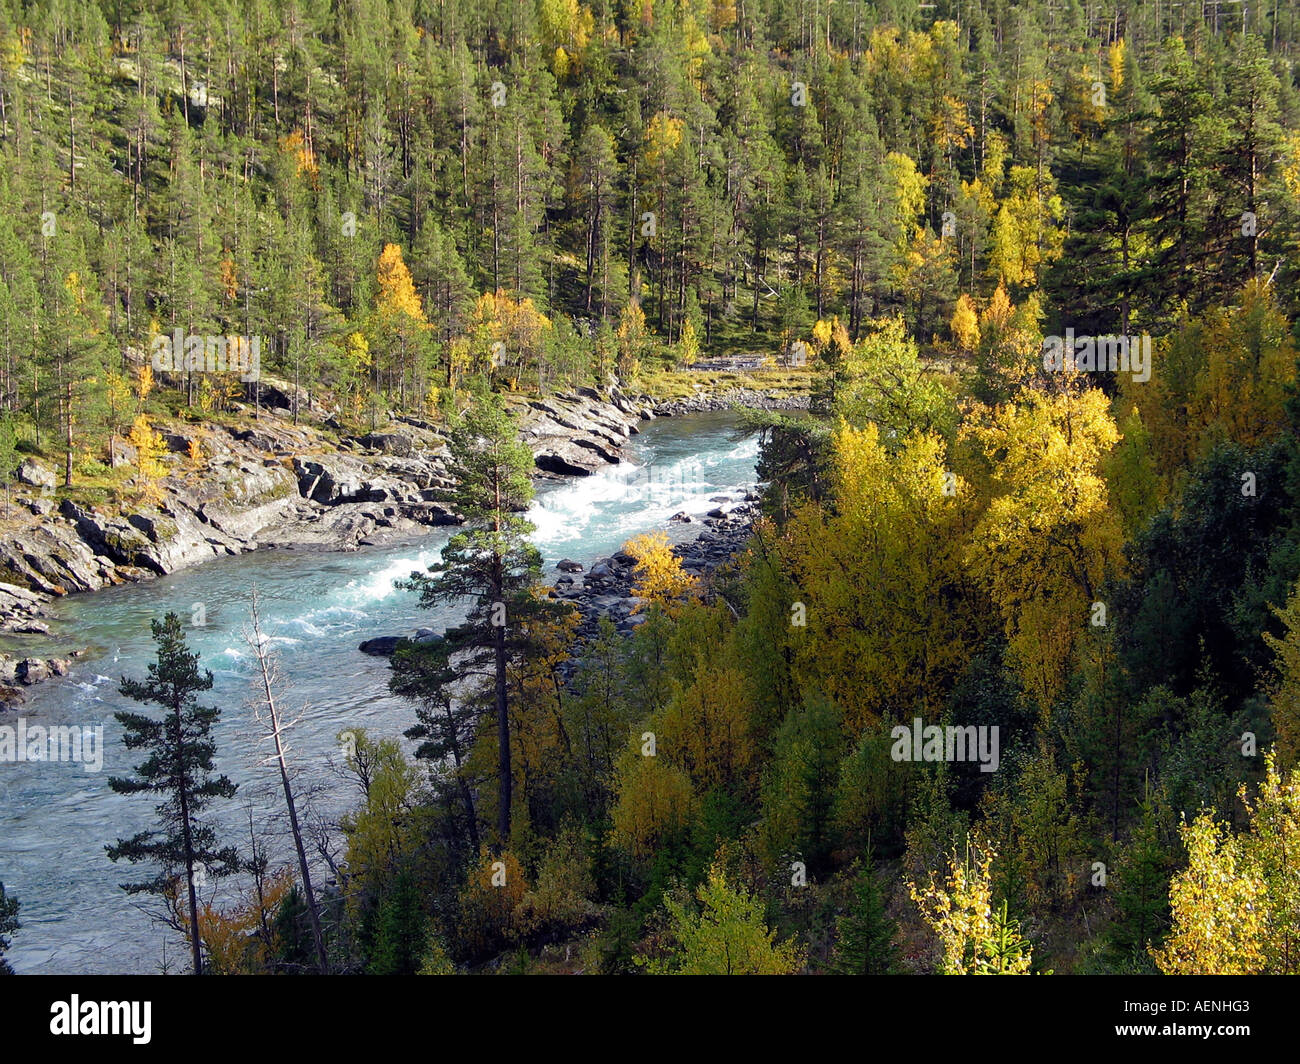 The turning of the seasons Indian summer, Jotunheimen, Norway - Stock Image